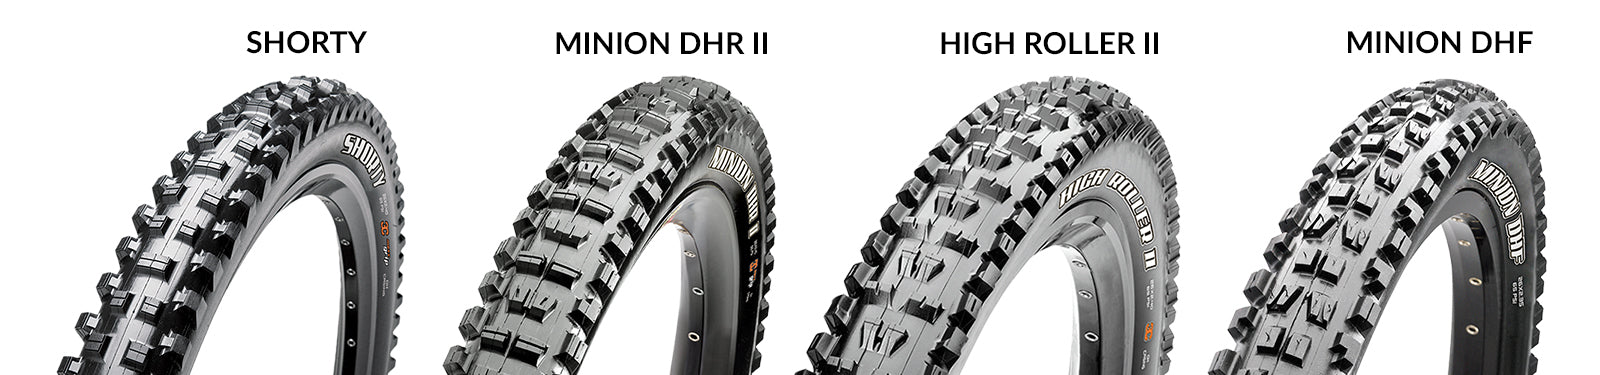 Maxxis DH Tires - Worldwide Cyclery